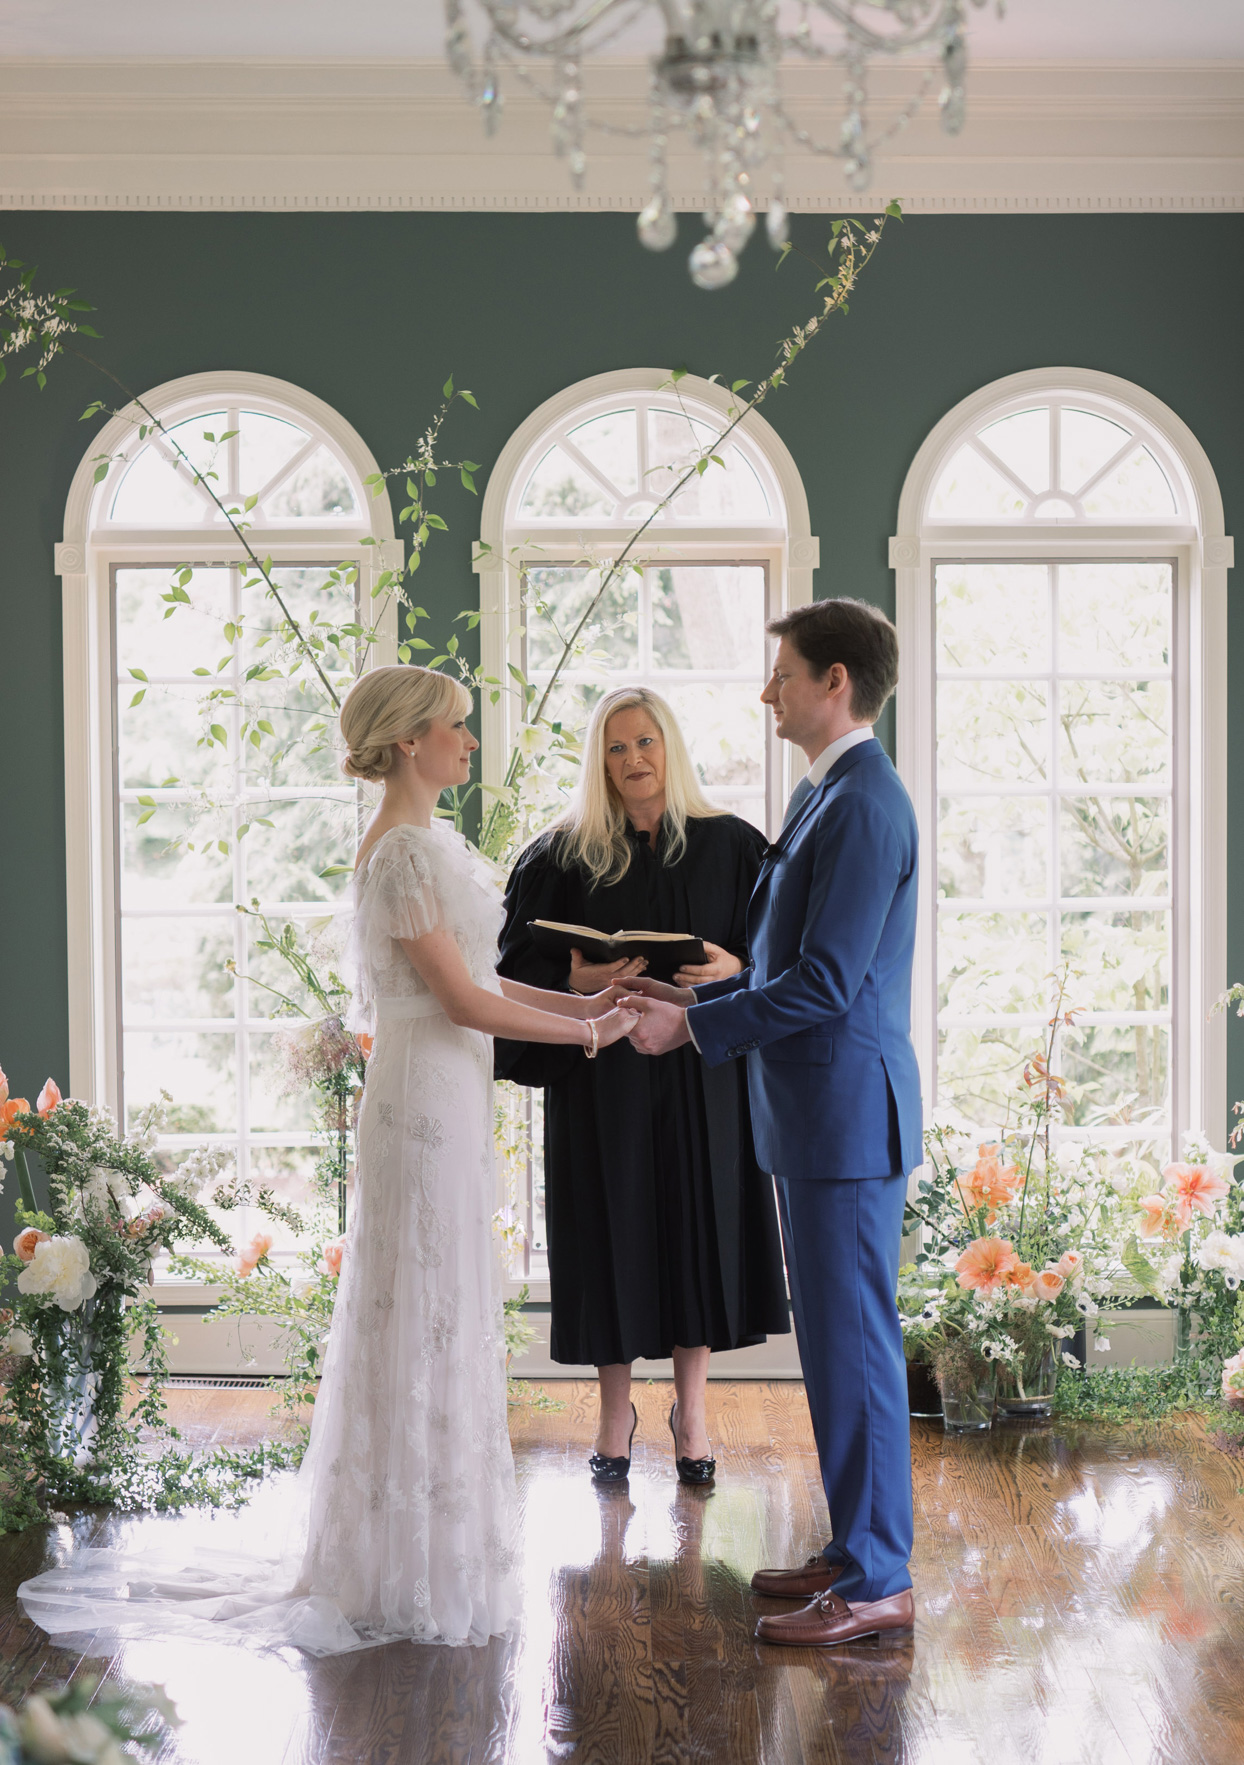 couple exchanging vows in intimate house ceremony surrounded by flowers